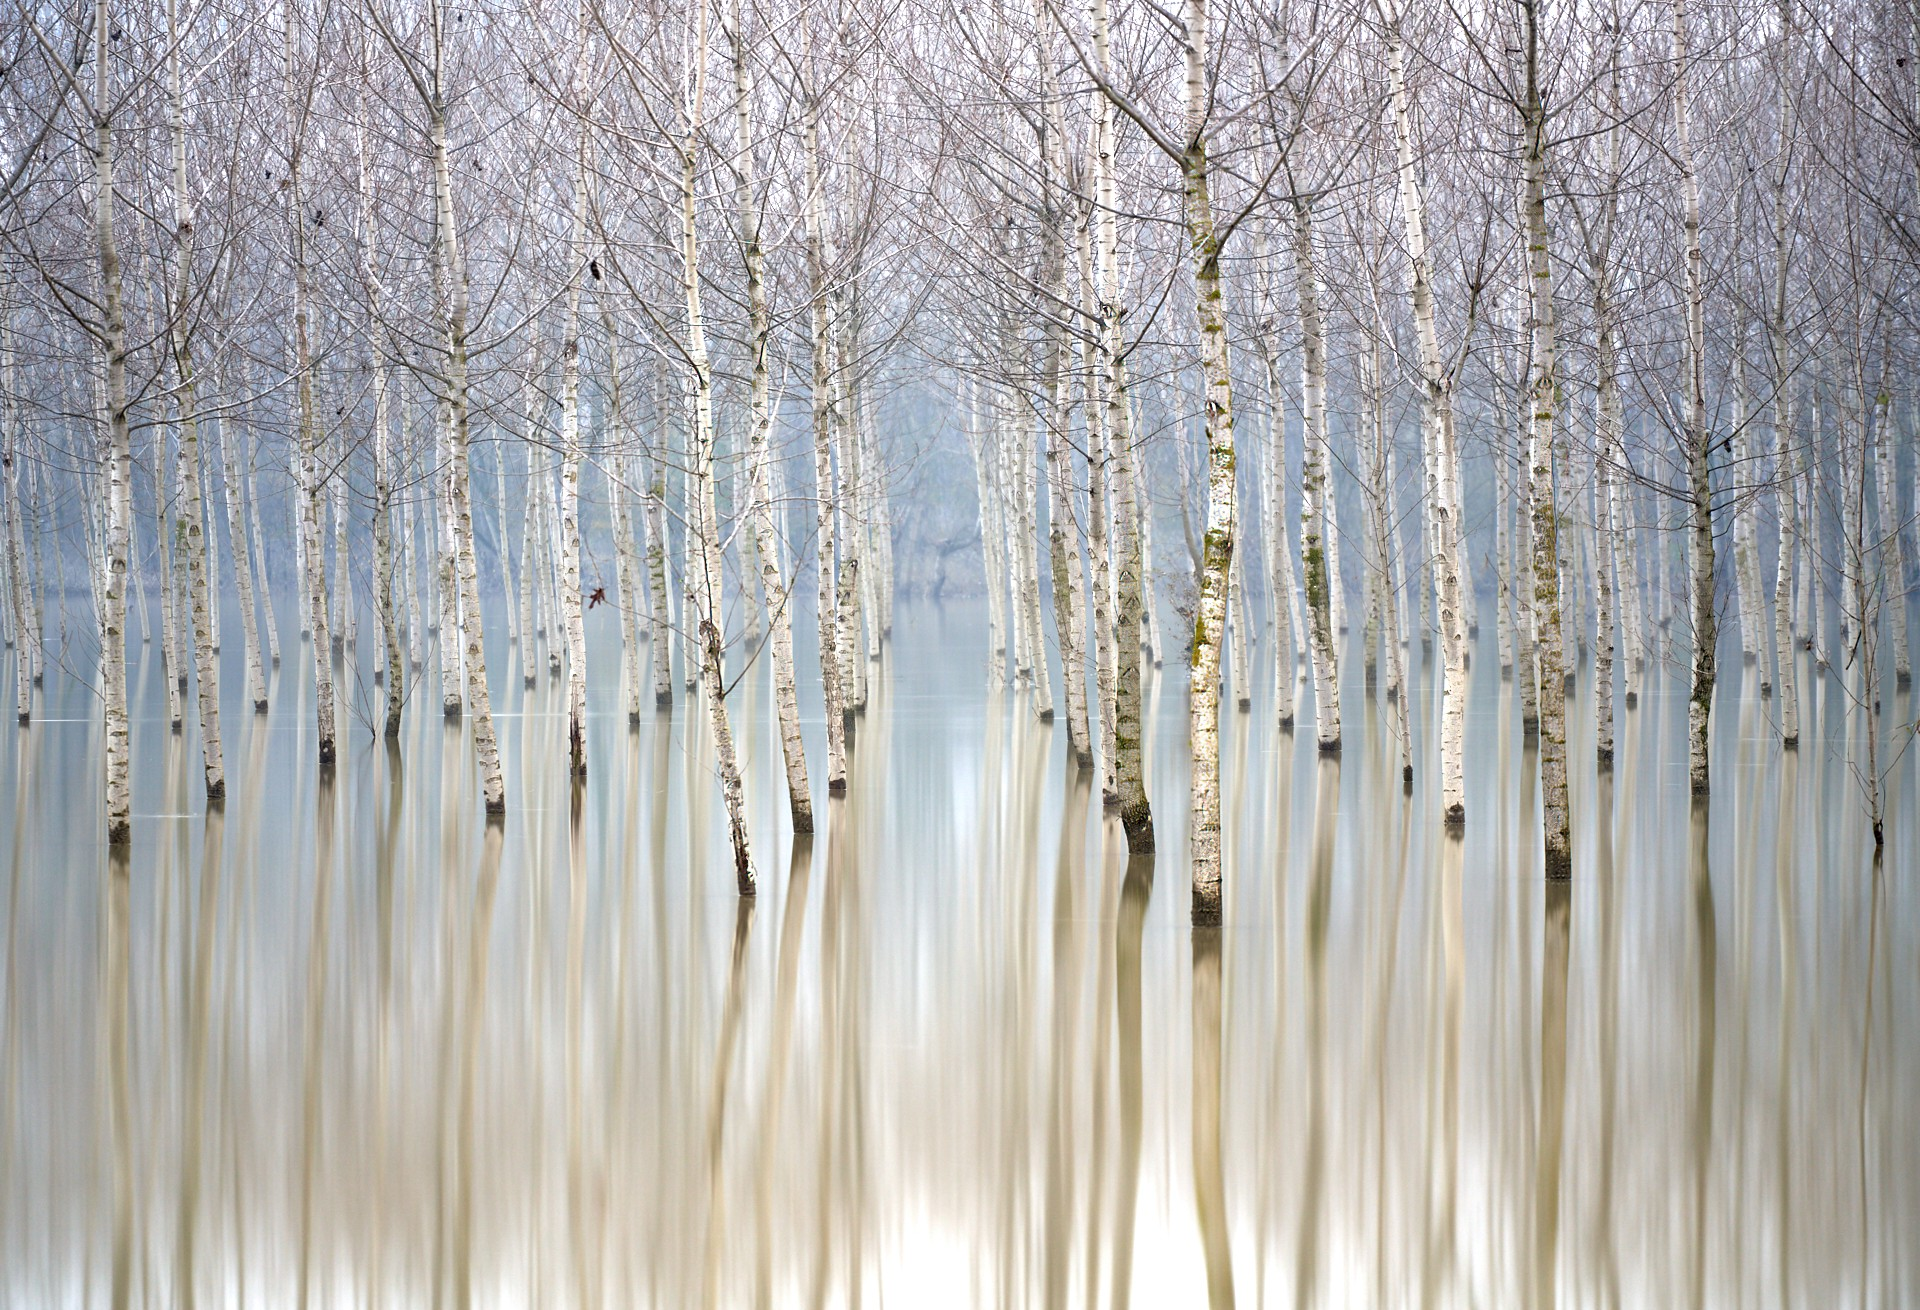 Birch trees pop out of a still lake, with their reflections on the water giving the entire photograph a painterly effect